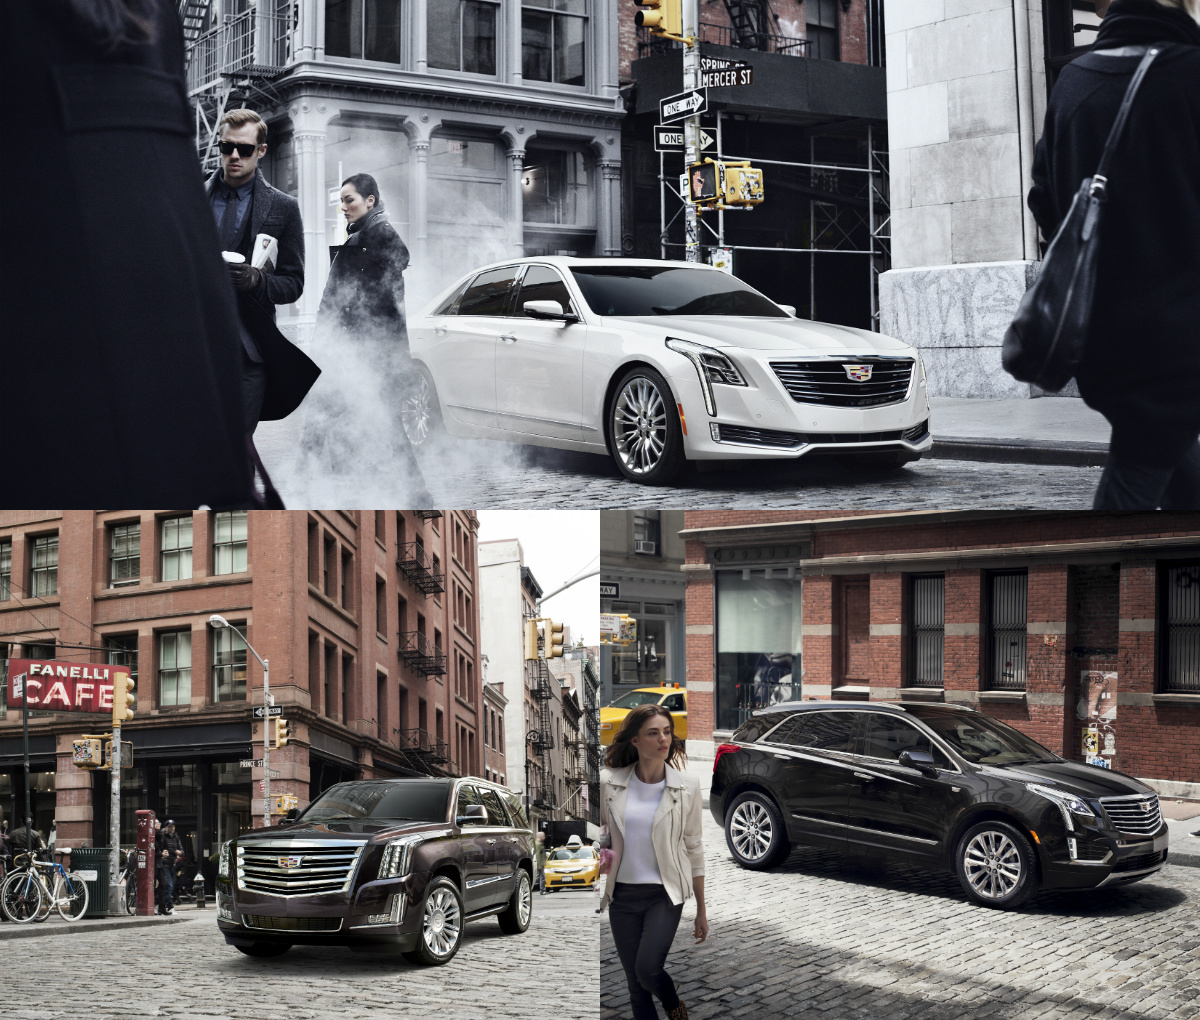 Cadillac Introduces First-of-its-kind Luxury Car